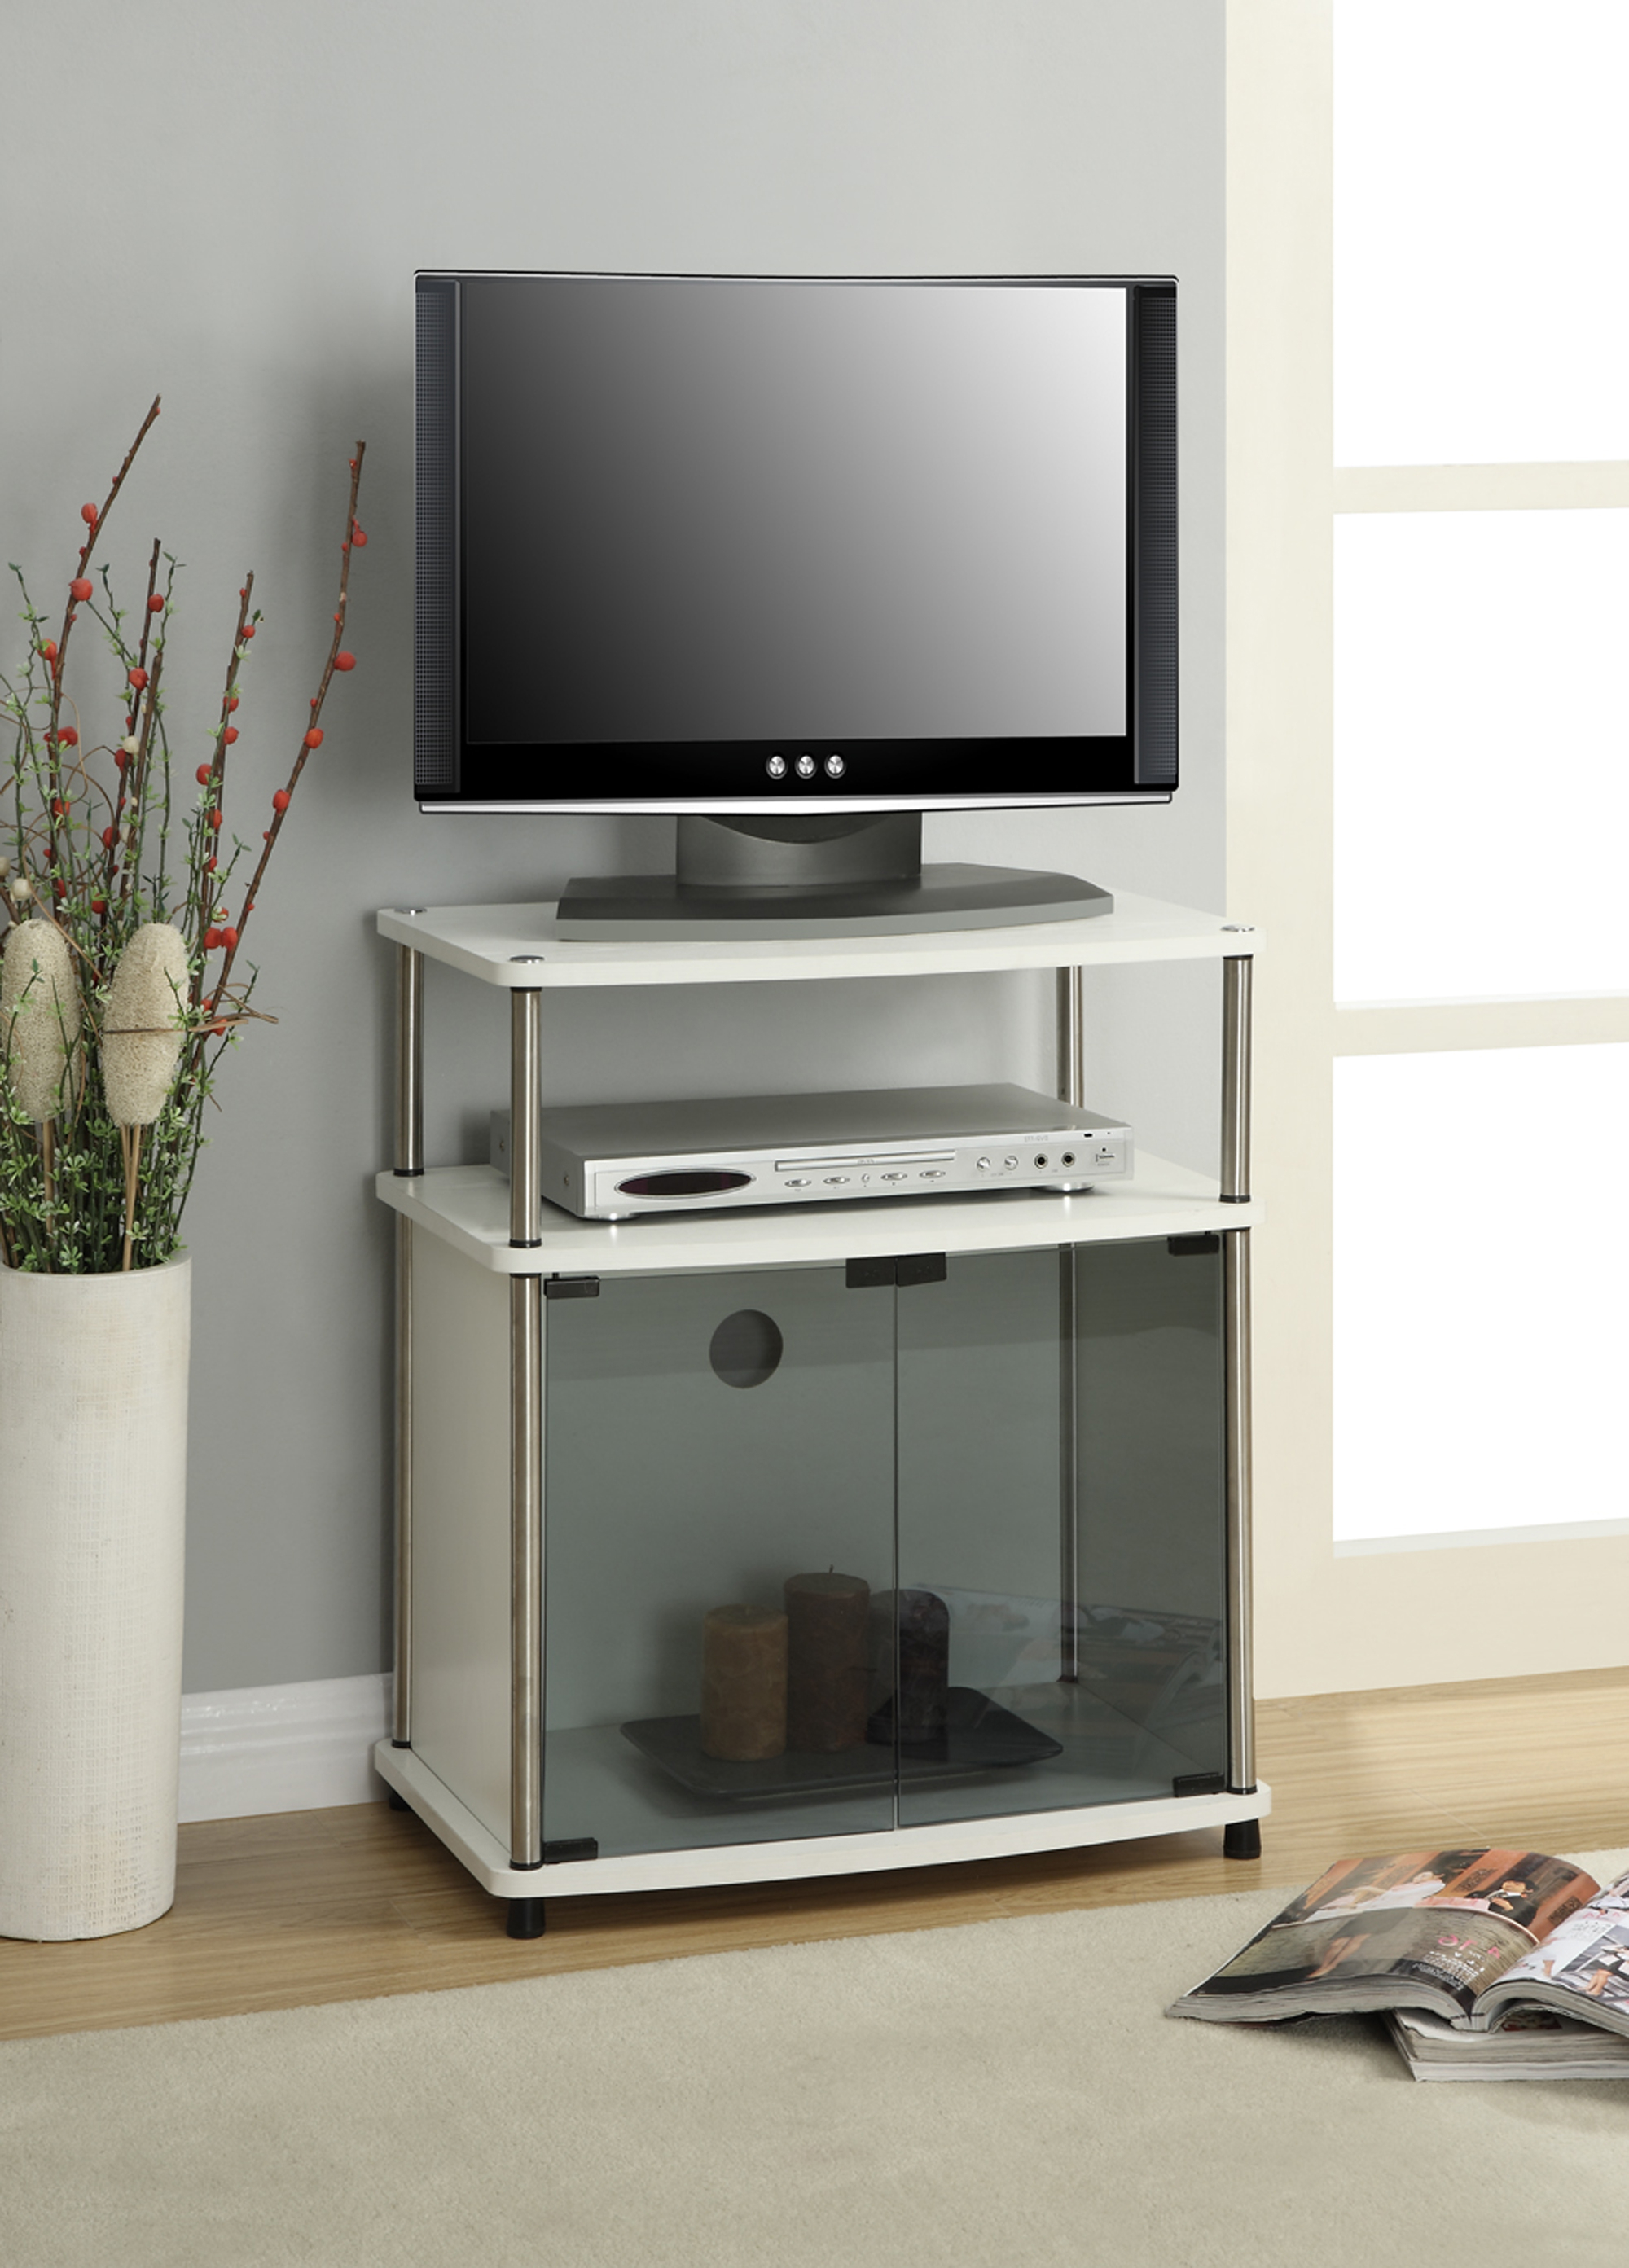 Tv Cabinets With Glass Doors Within Recent Convenience Concepts Designs2go No Tools Tv Stand With Black Glass (View 15 of 20)